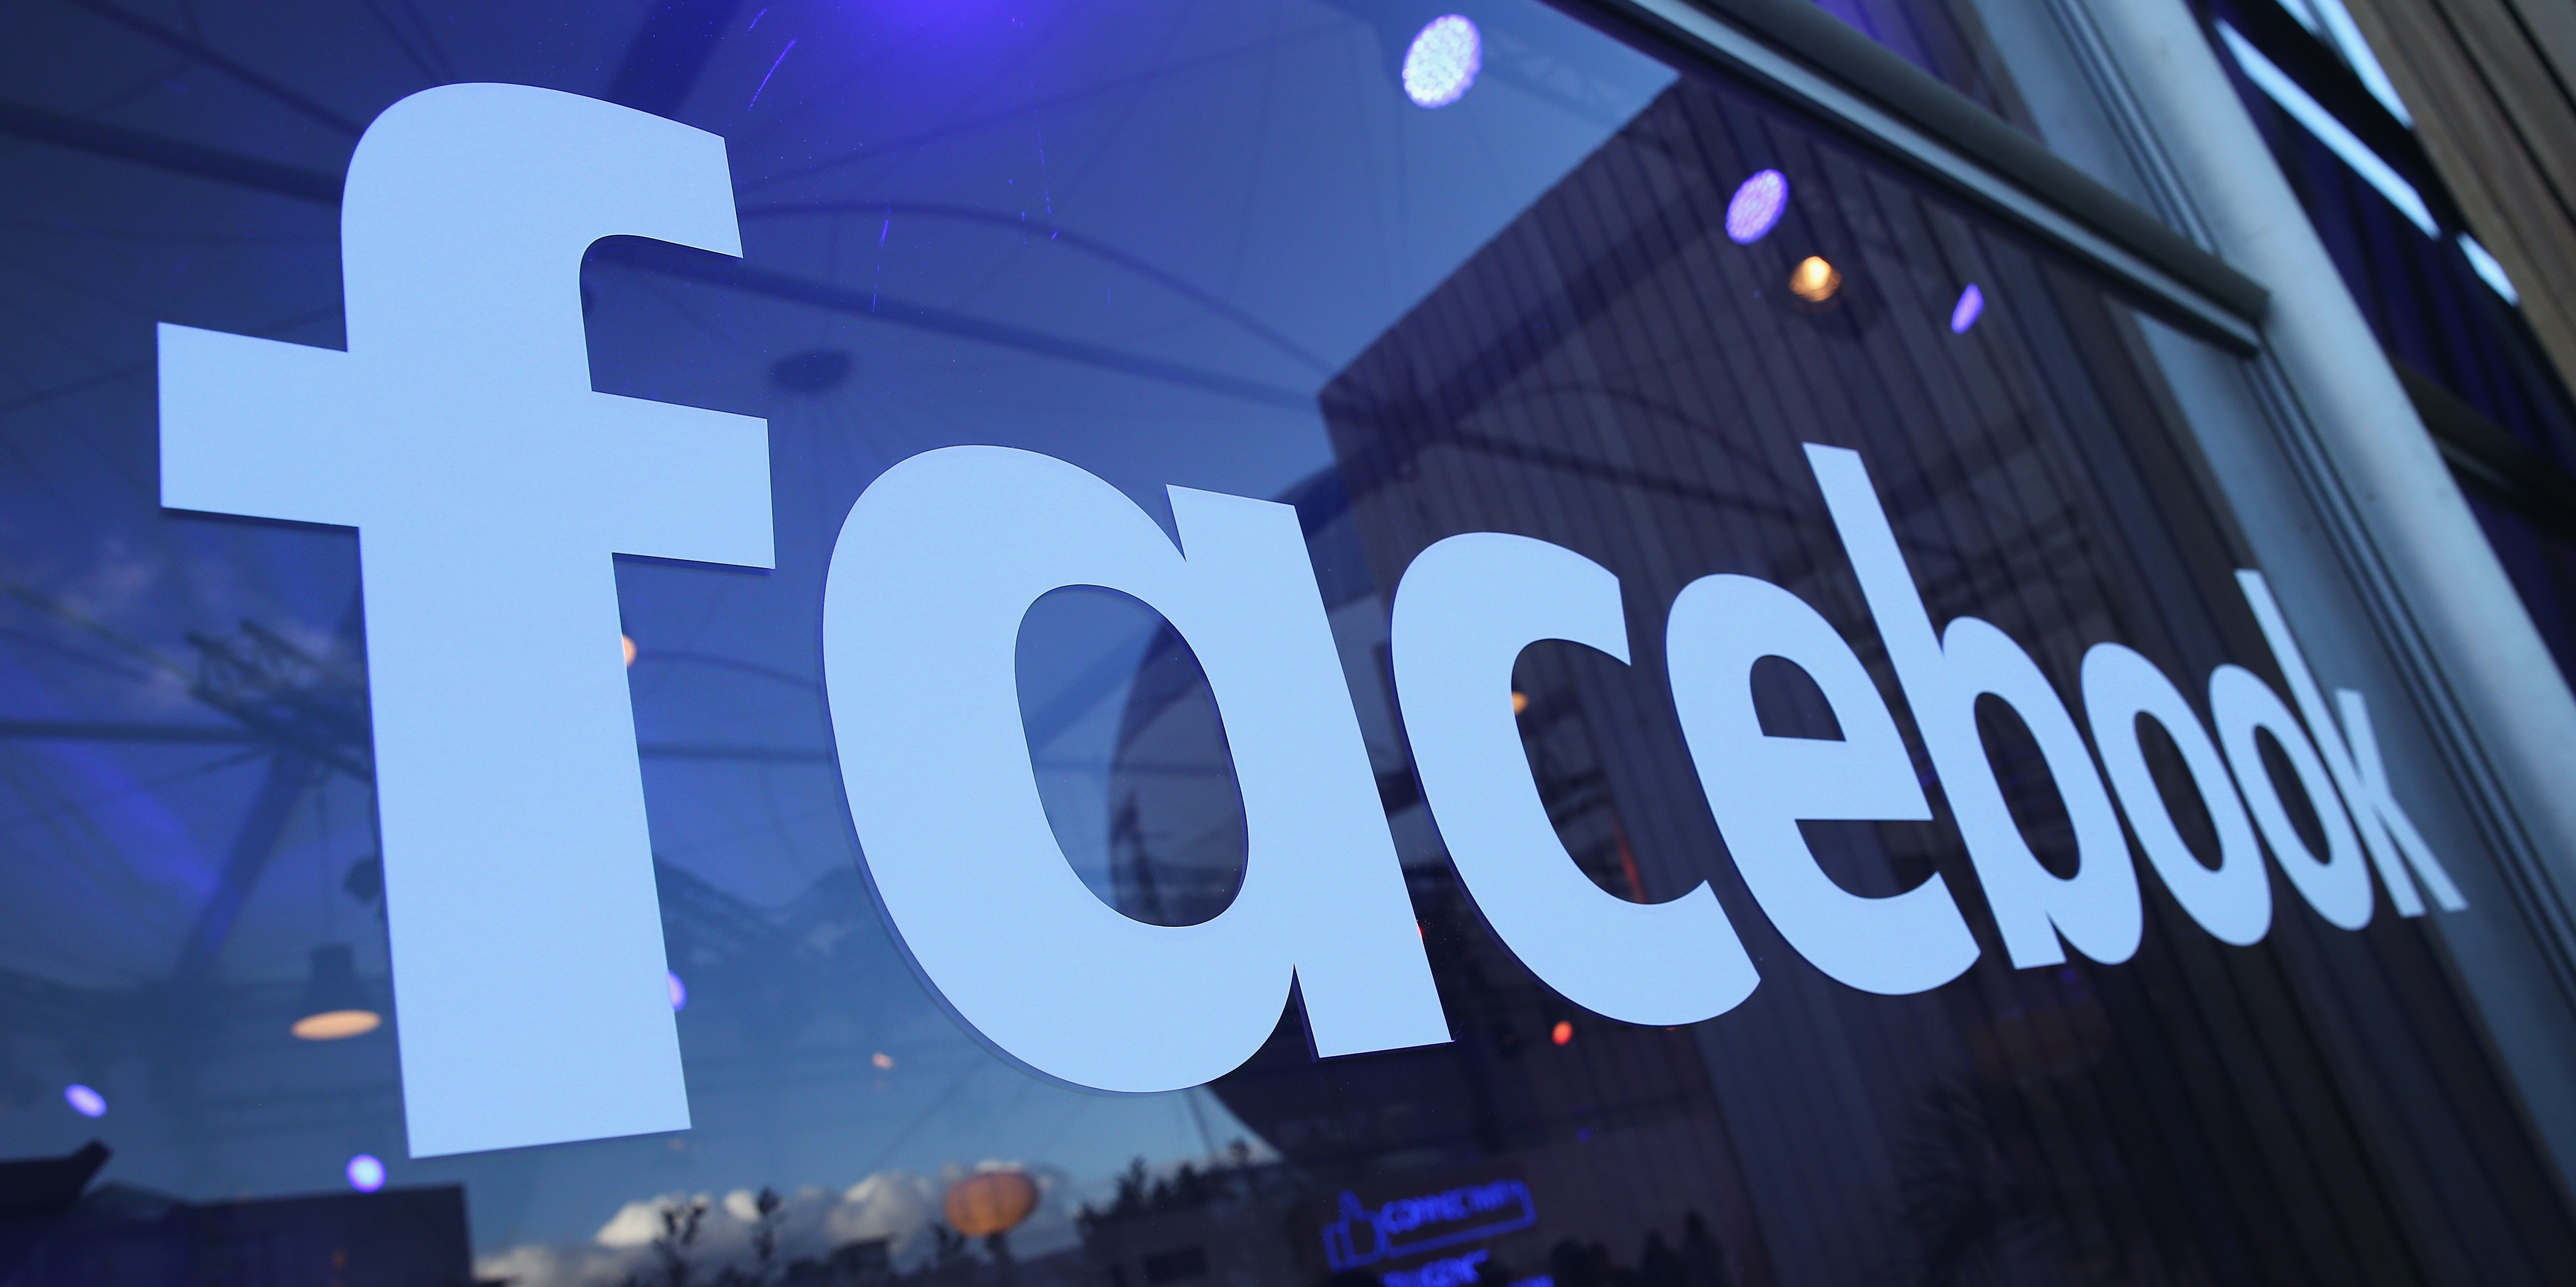 The Facebook logo is displayed at the Facebook Innovation Hub on February 24, 2016 in Berlin, Germany. The Facebook Innovation Hub is a temporary exhibition space where the company is showcasing some of its newest technologies and projects.